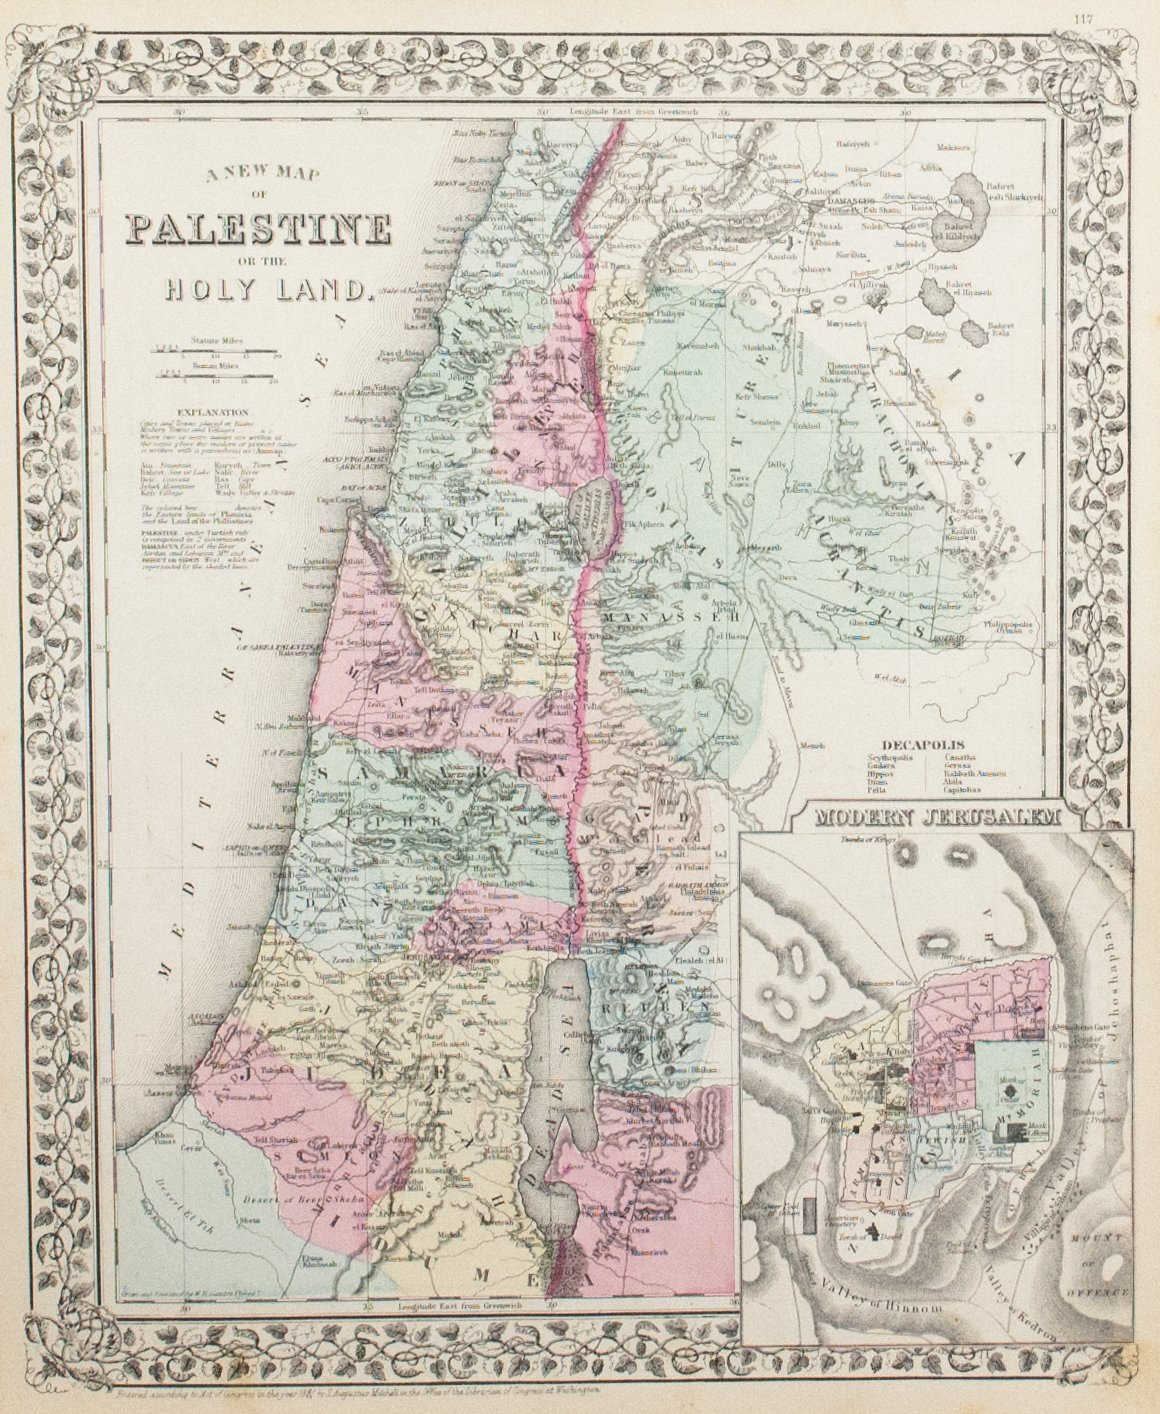 1881 A New Map of Palestine of the Holy Land - S Mitchell Jr